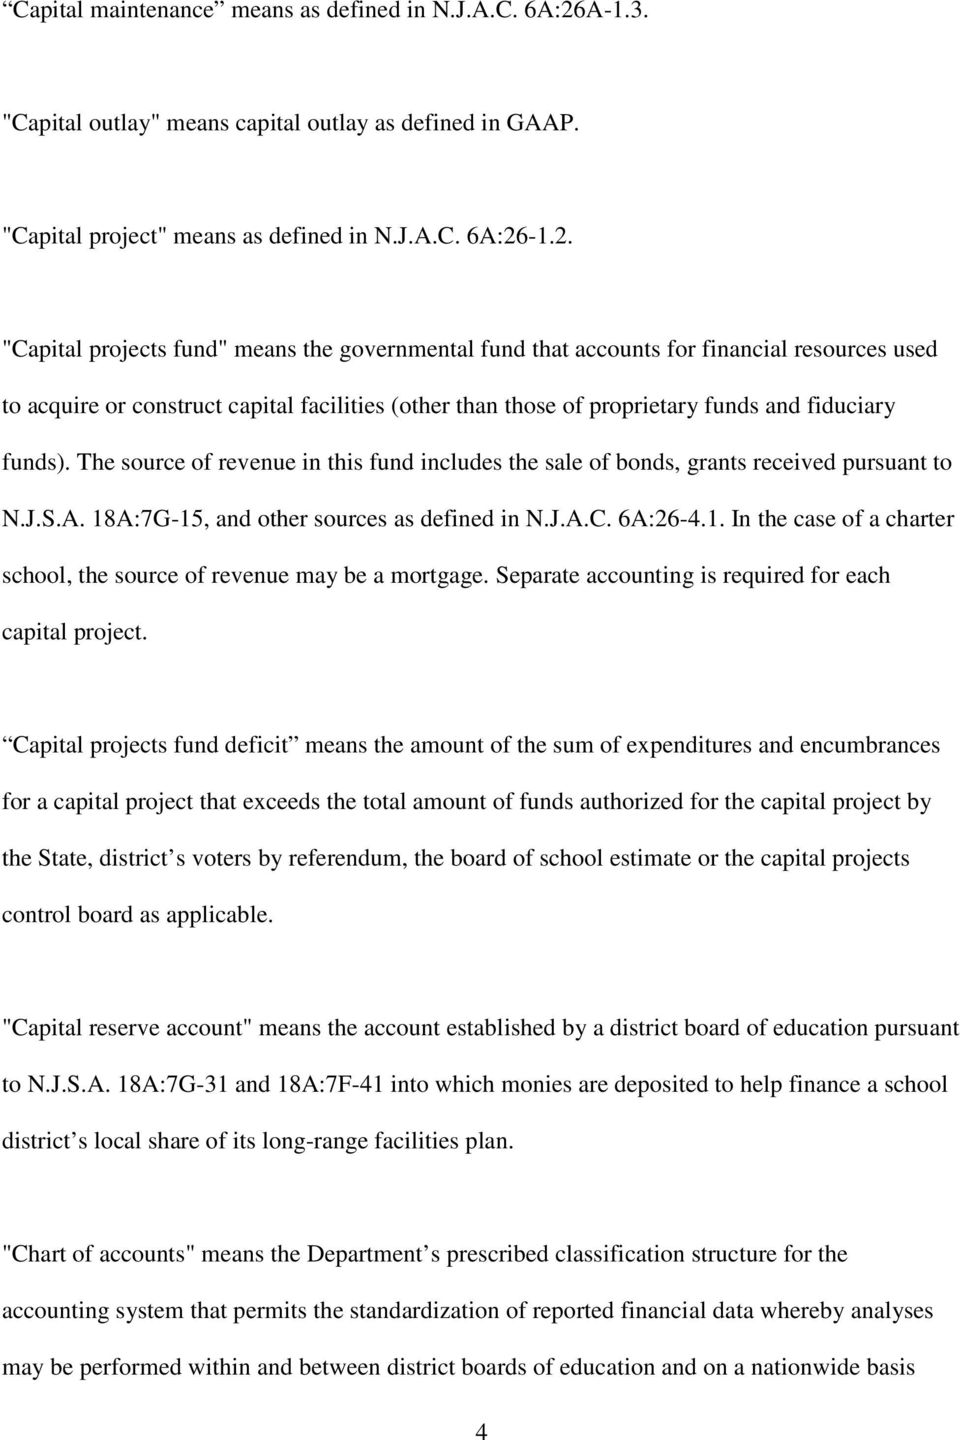 "-1.2. ""Capital projects fund"" means the governmental fund that accounts for financial resources used to acquire or construct capital facilities (other than those of proprietary funds and fiduciary"